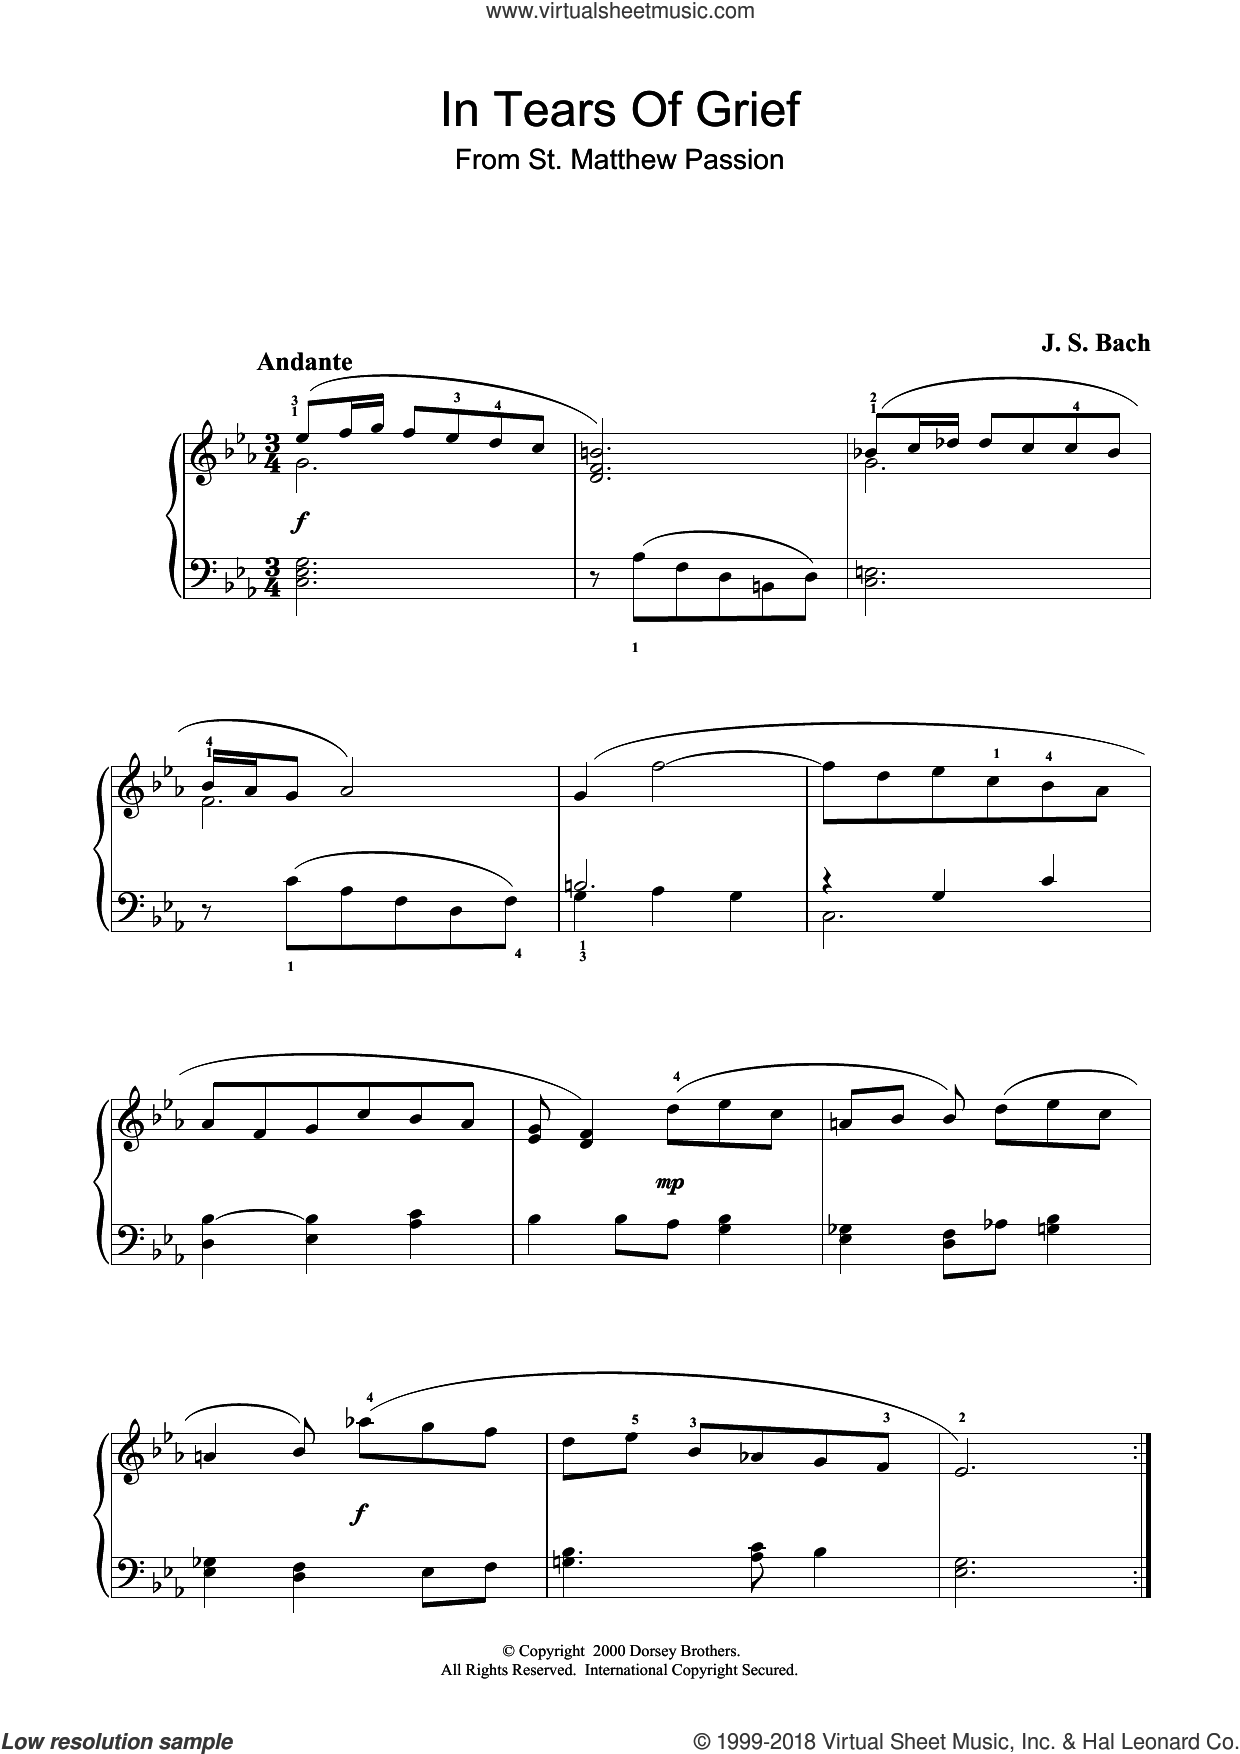 In Tears Of Grief (from St Matthew Passion) sheet music for piano solo by Johann Sebastian Bach, classical score, intermediate skill level